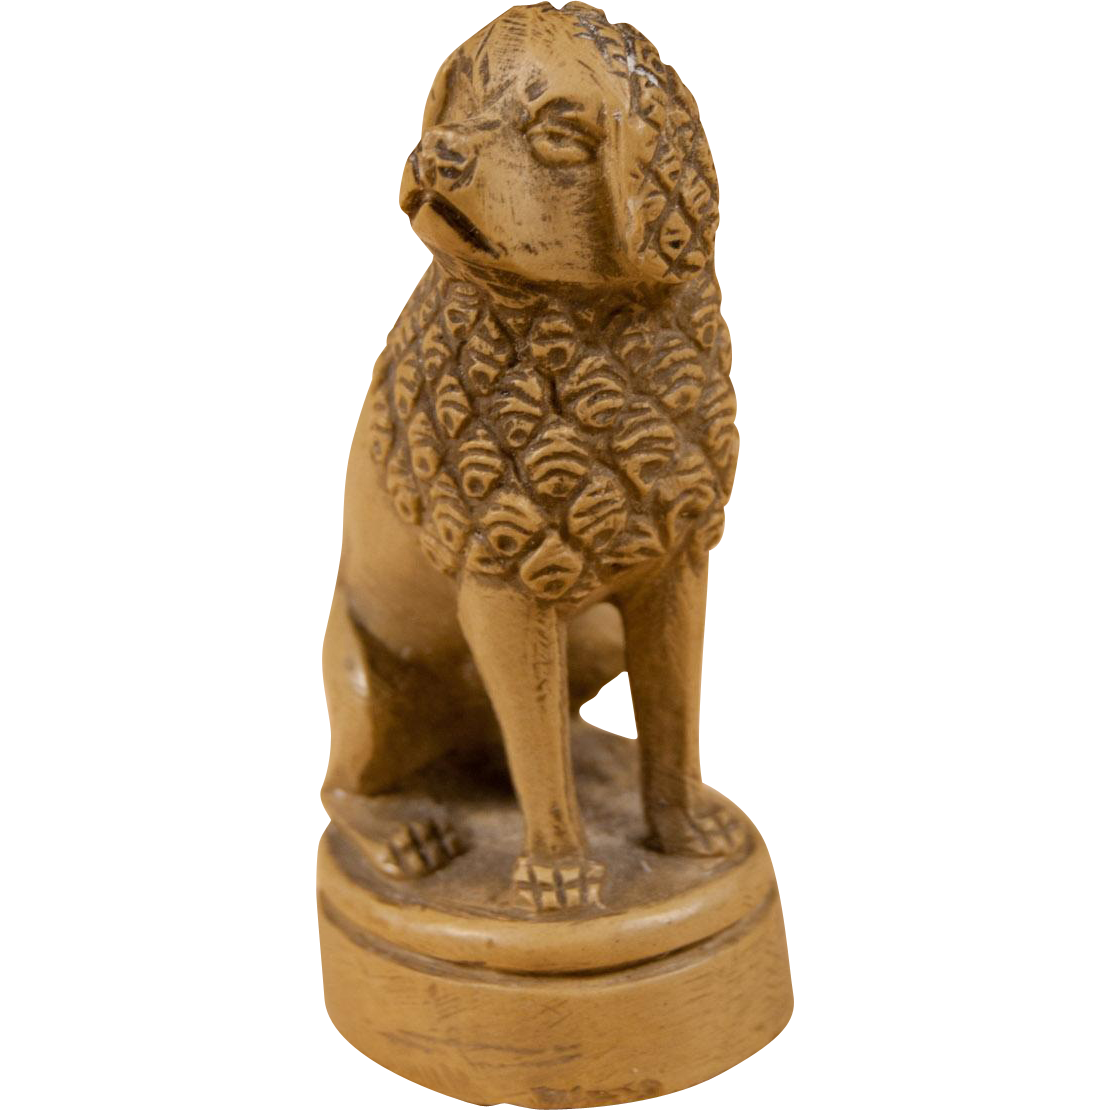 A small carved stone dog